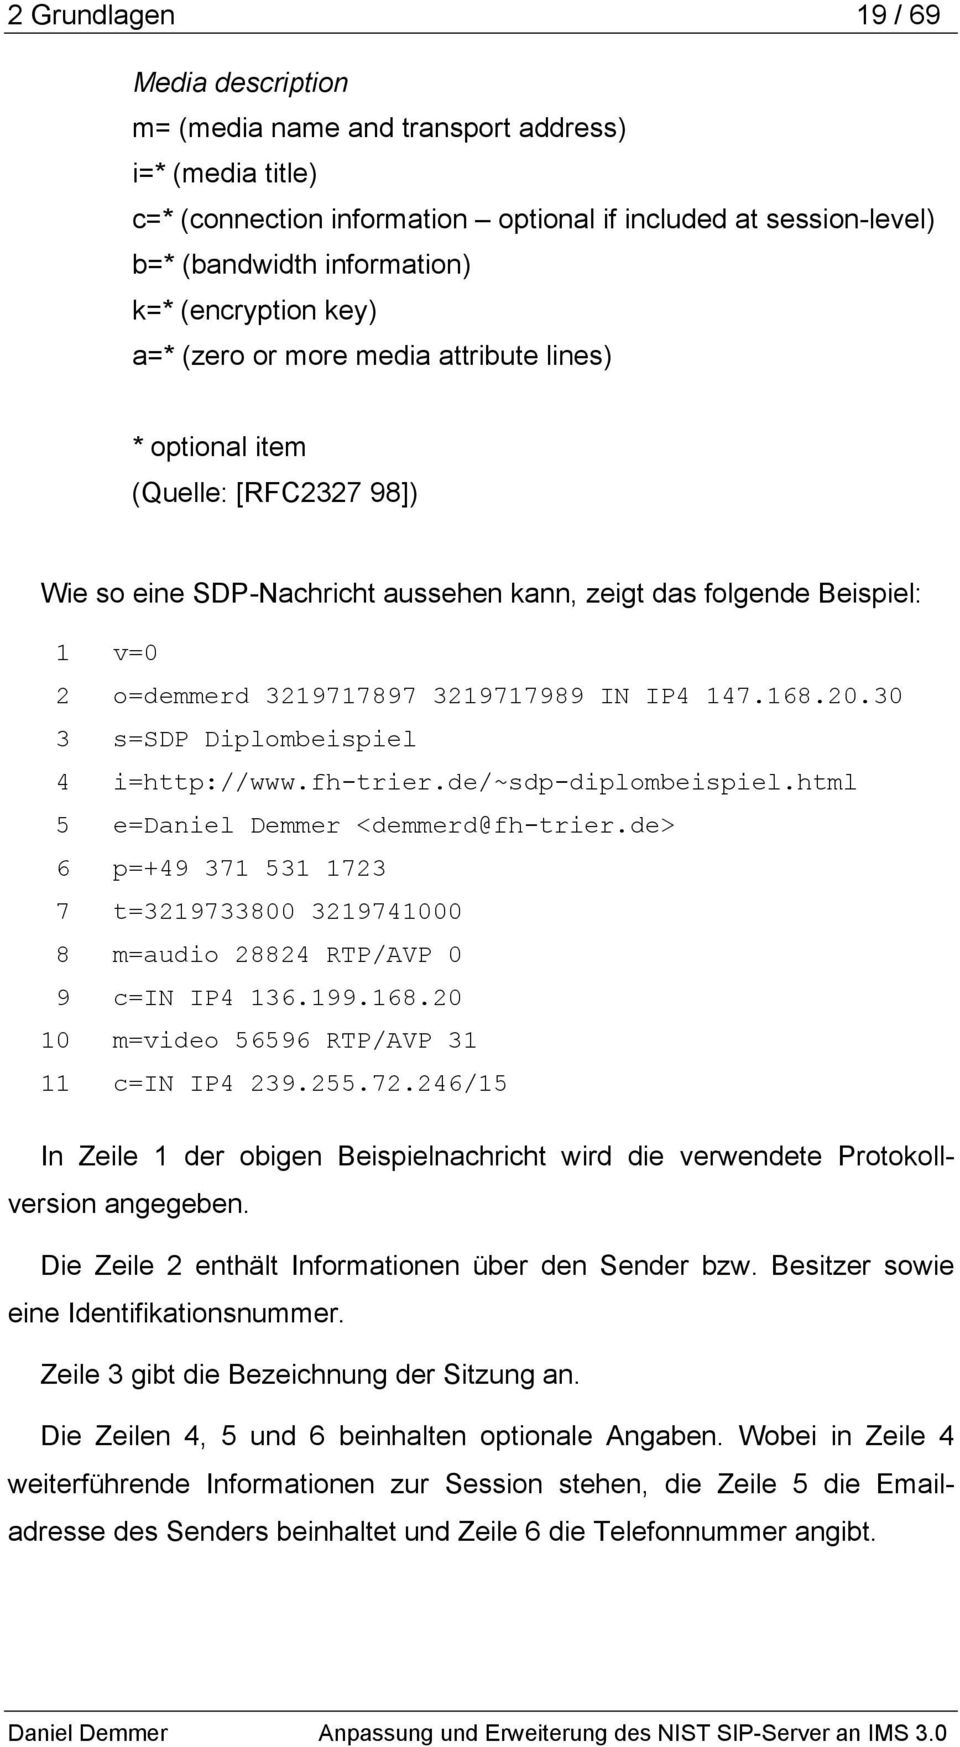 3219717989 IN IP4 147.168.20.30 3 s=sdp Diplombeispiel 4 i=http://www.fh-trier.de/~sdp-diplombeispiel.html 5 e=daniel Demmer <demmerd@fh-trier.